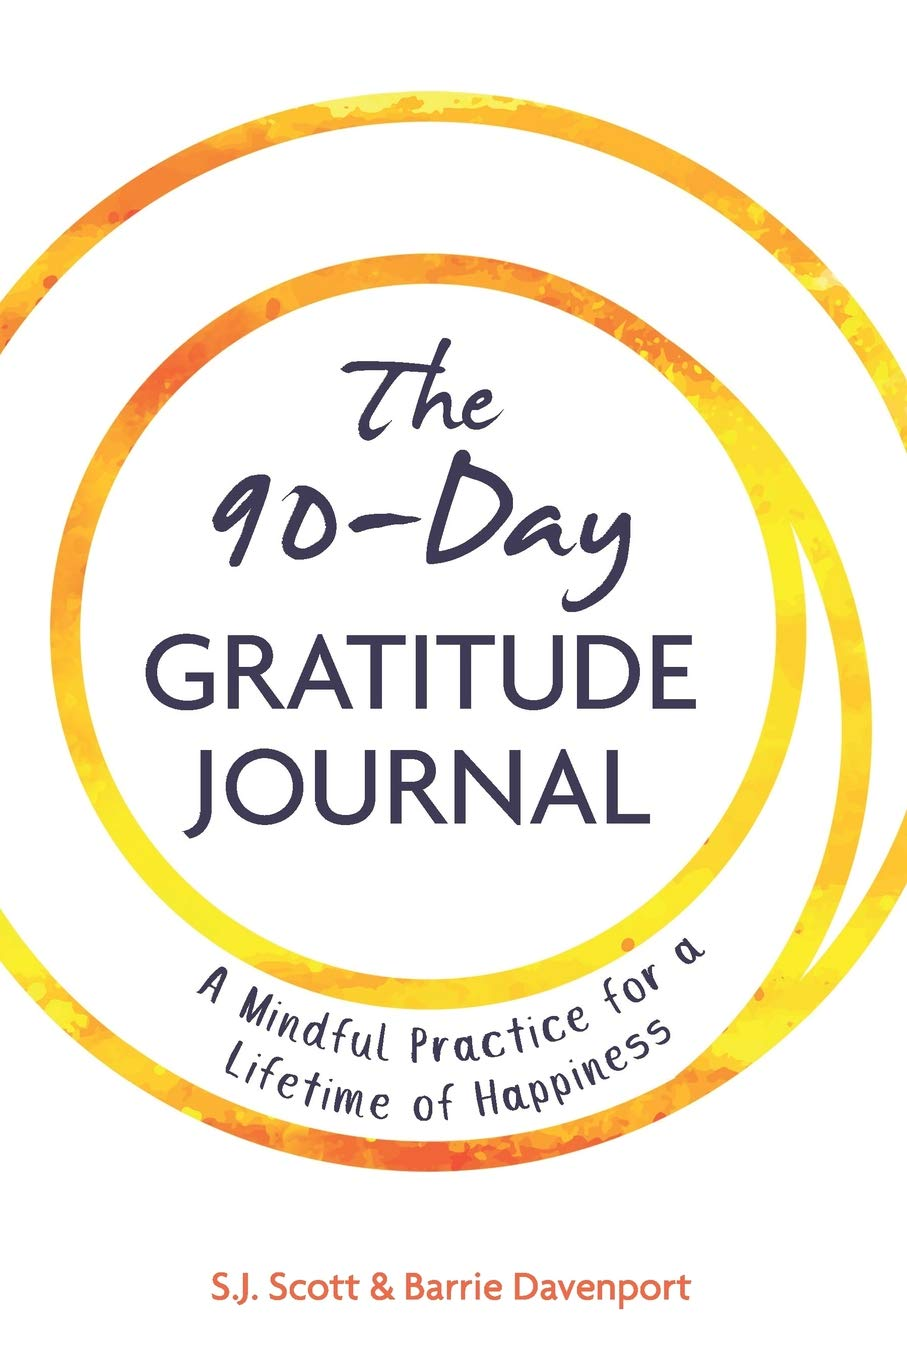 90 Day Gratitude Journal Practice Happiness product image